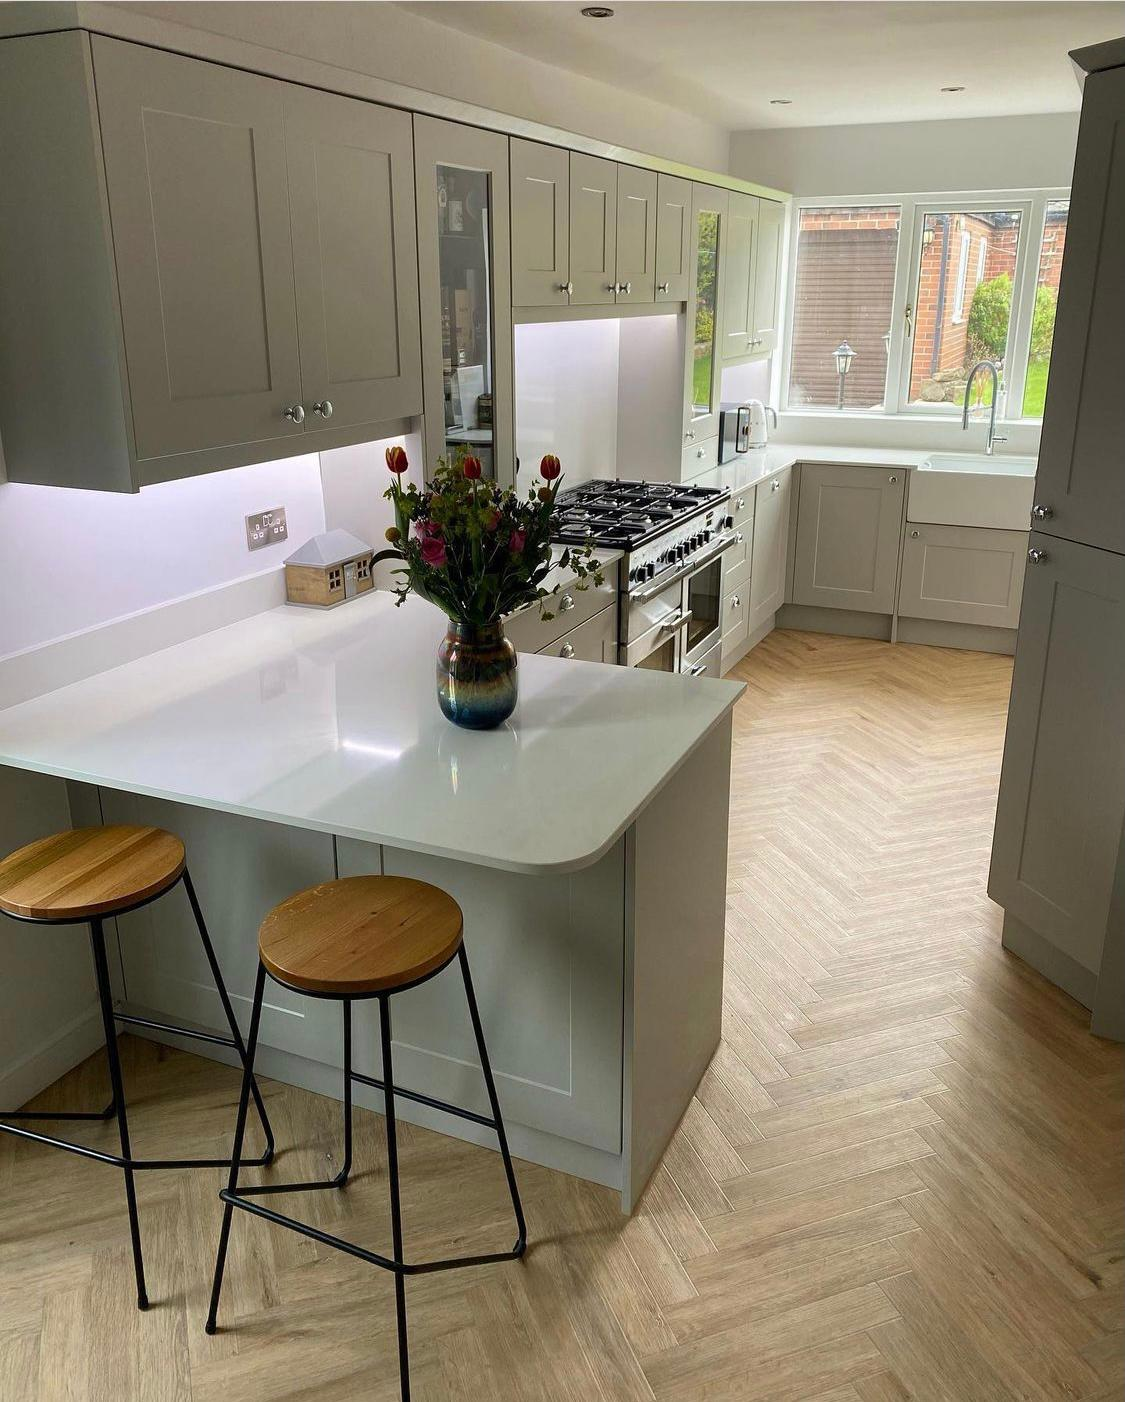 inframe kitchen in farrow and ball pavillion grey